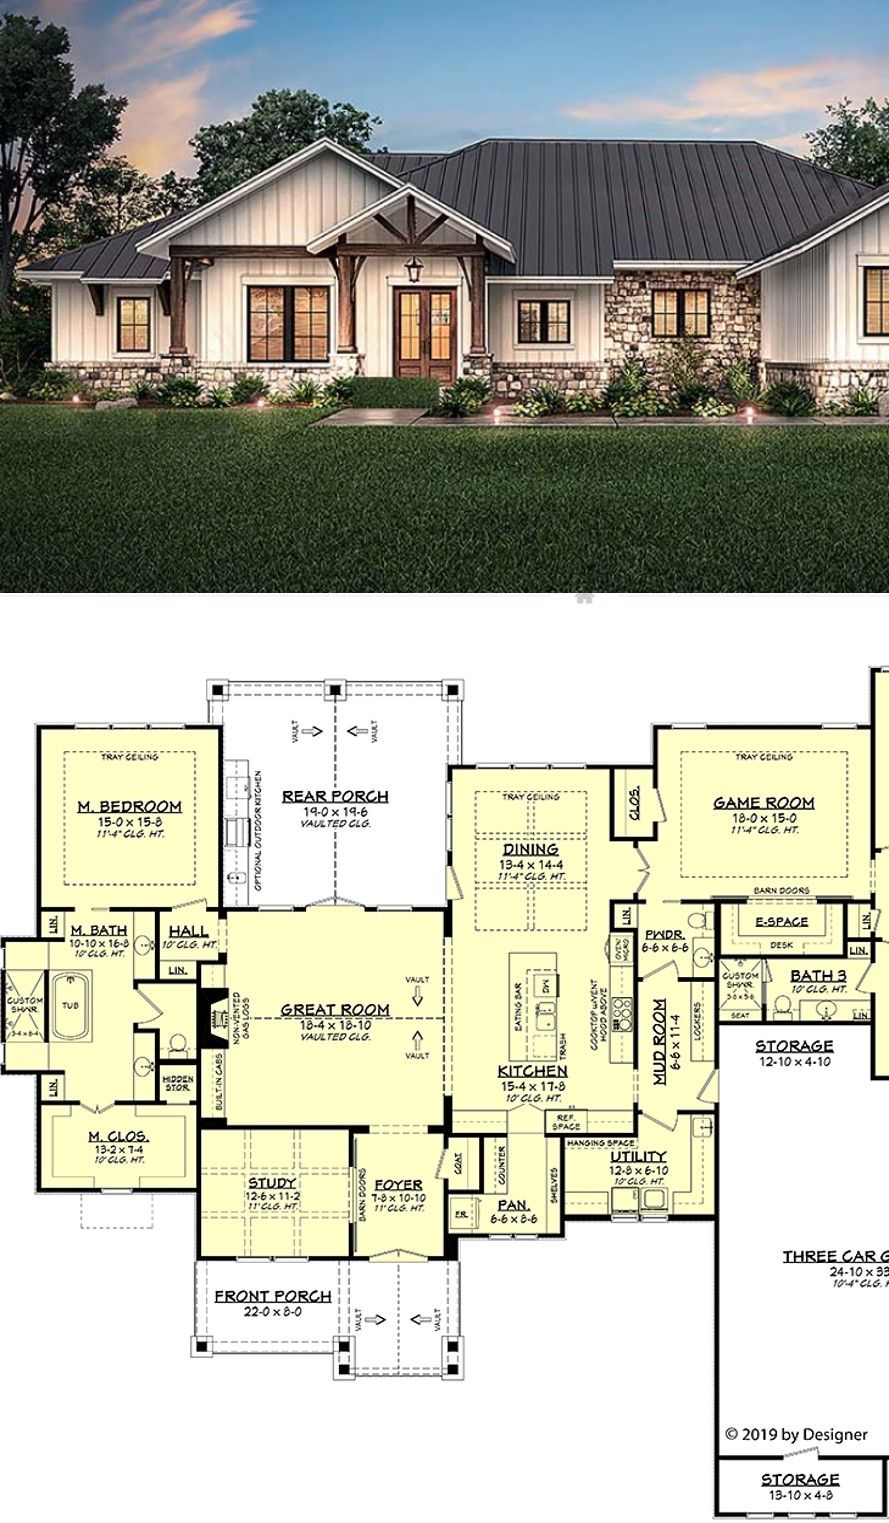 Ranch Style House Plan With 4 Bed 4 Bath 3 Car Garage Ranch Style House Plans Craftsman House Plans Ranch Style Floor Plans